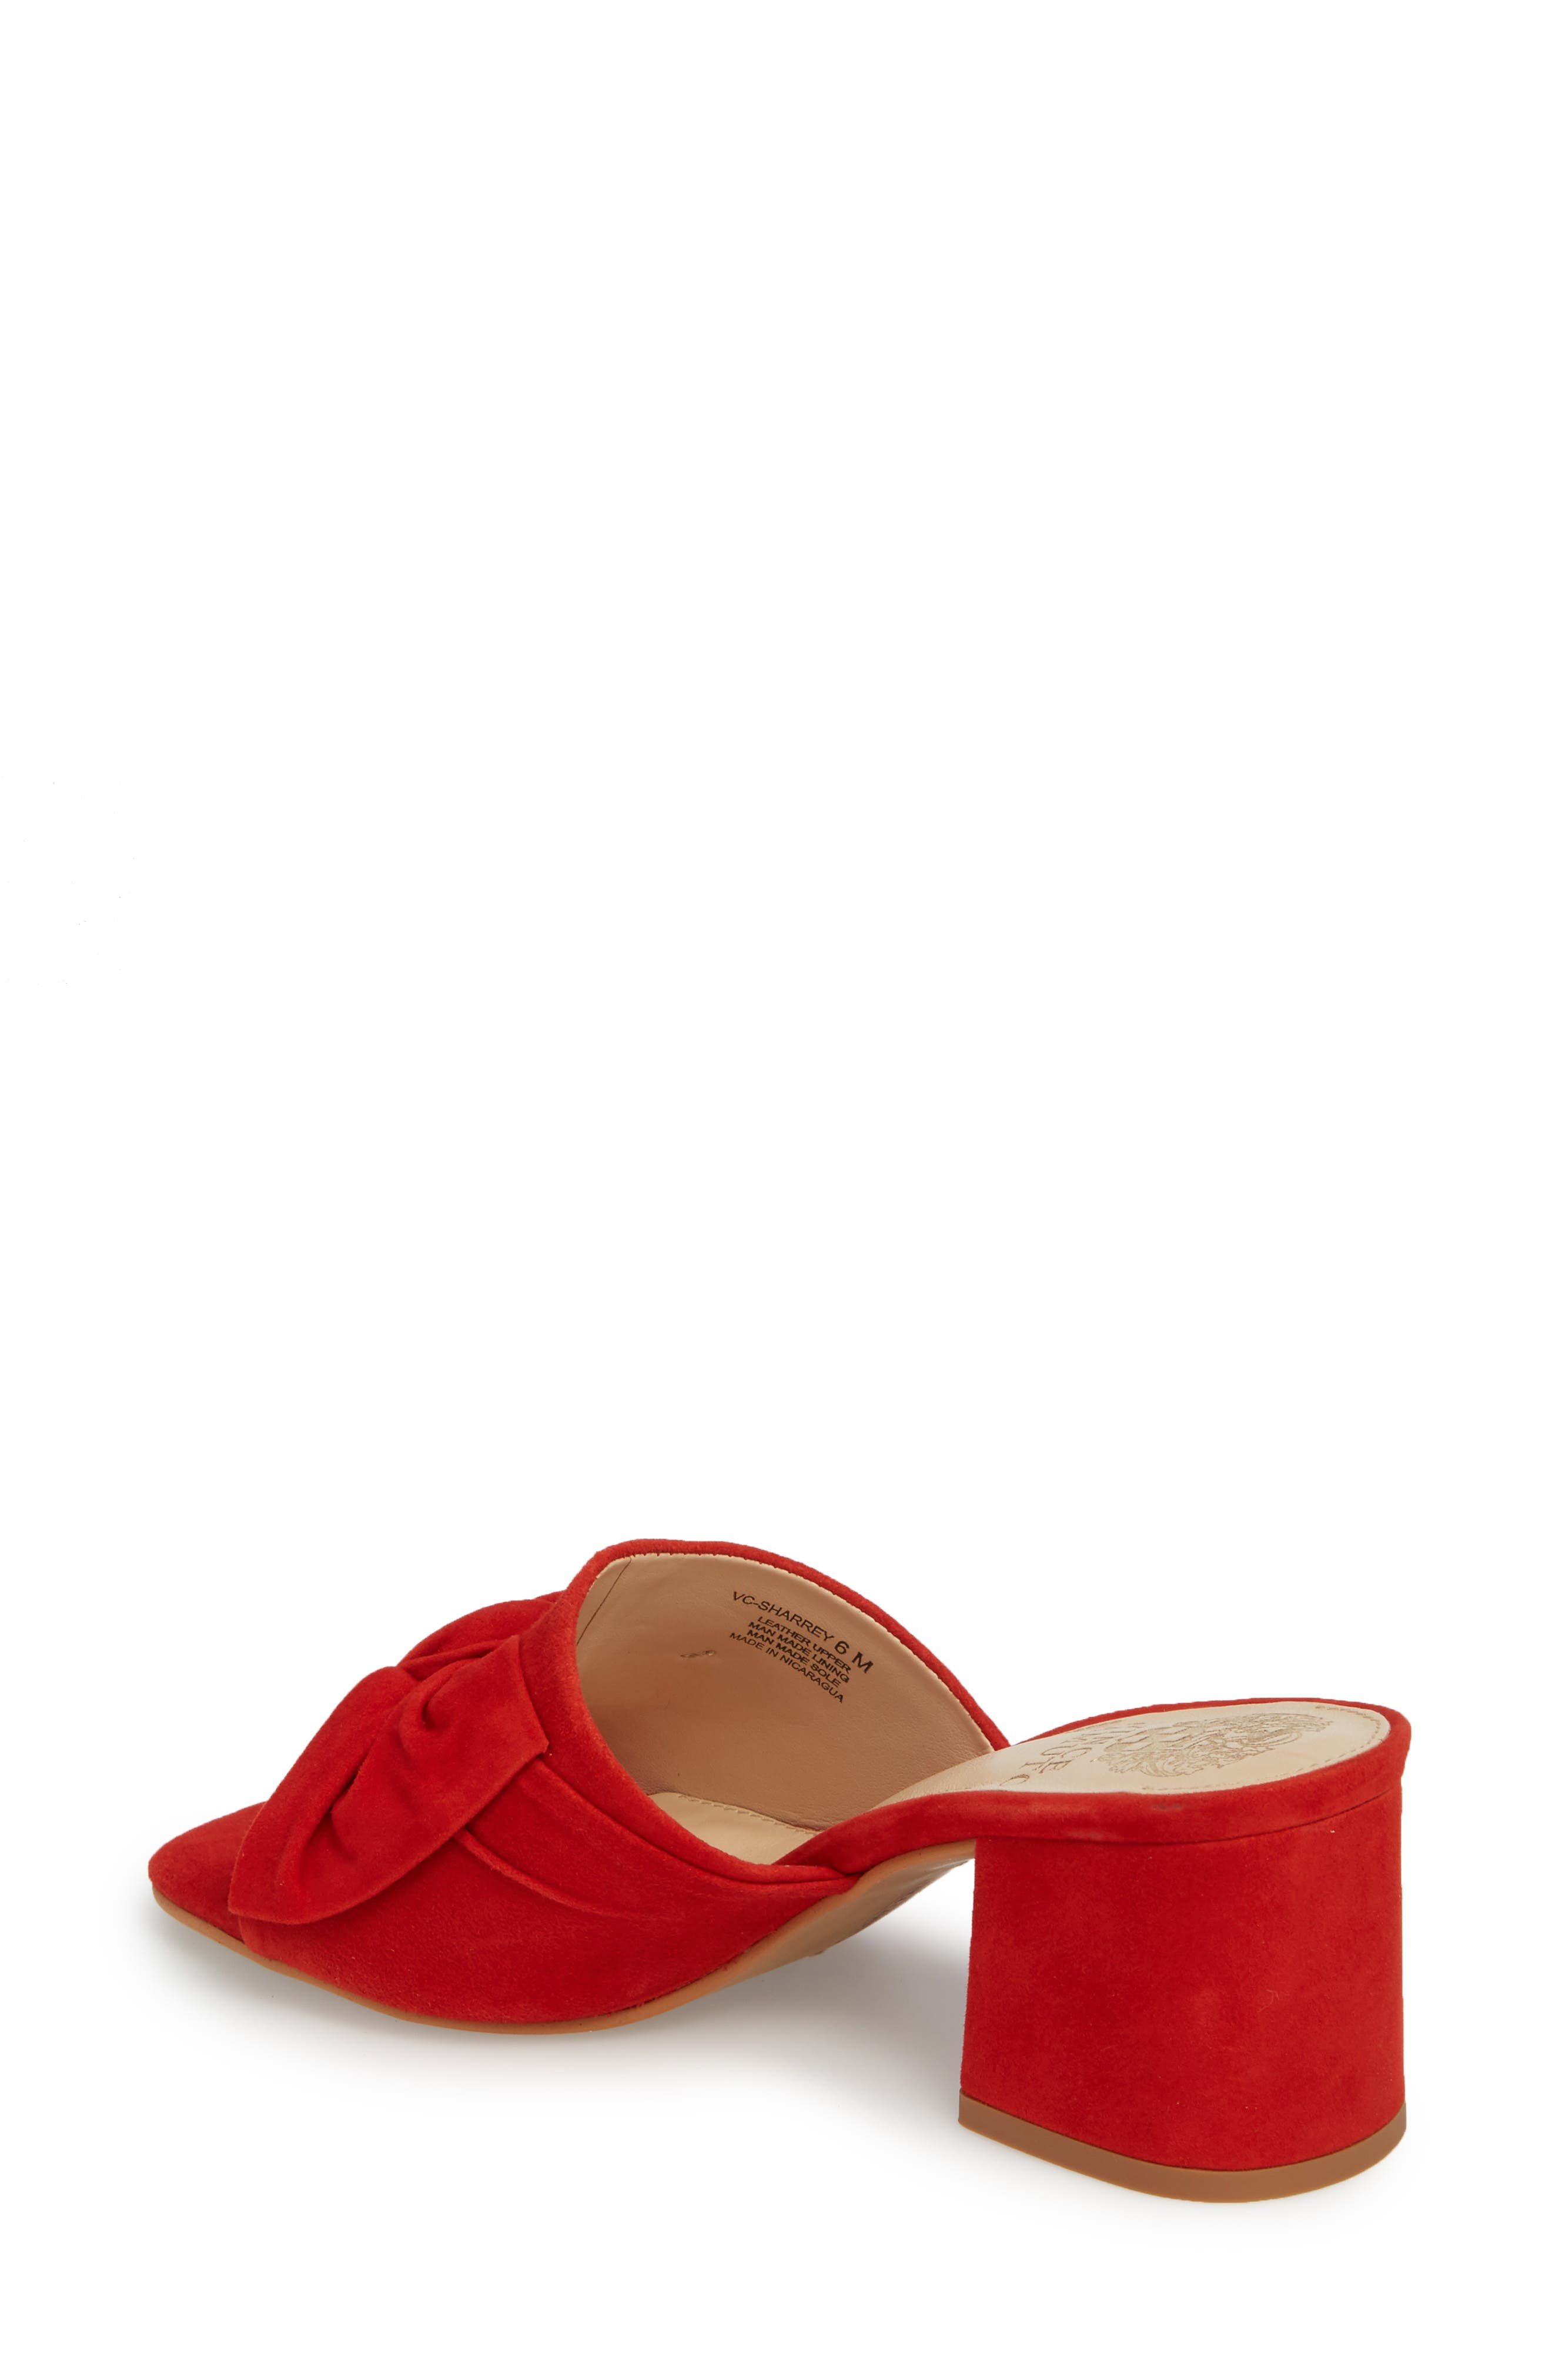 Sharrey Sandal,                             Alternate thumbnail 2, color,                             Red Hot Rio Suede